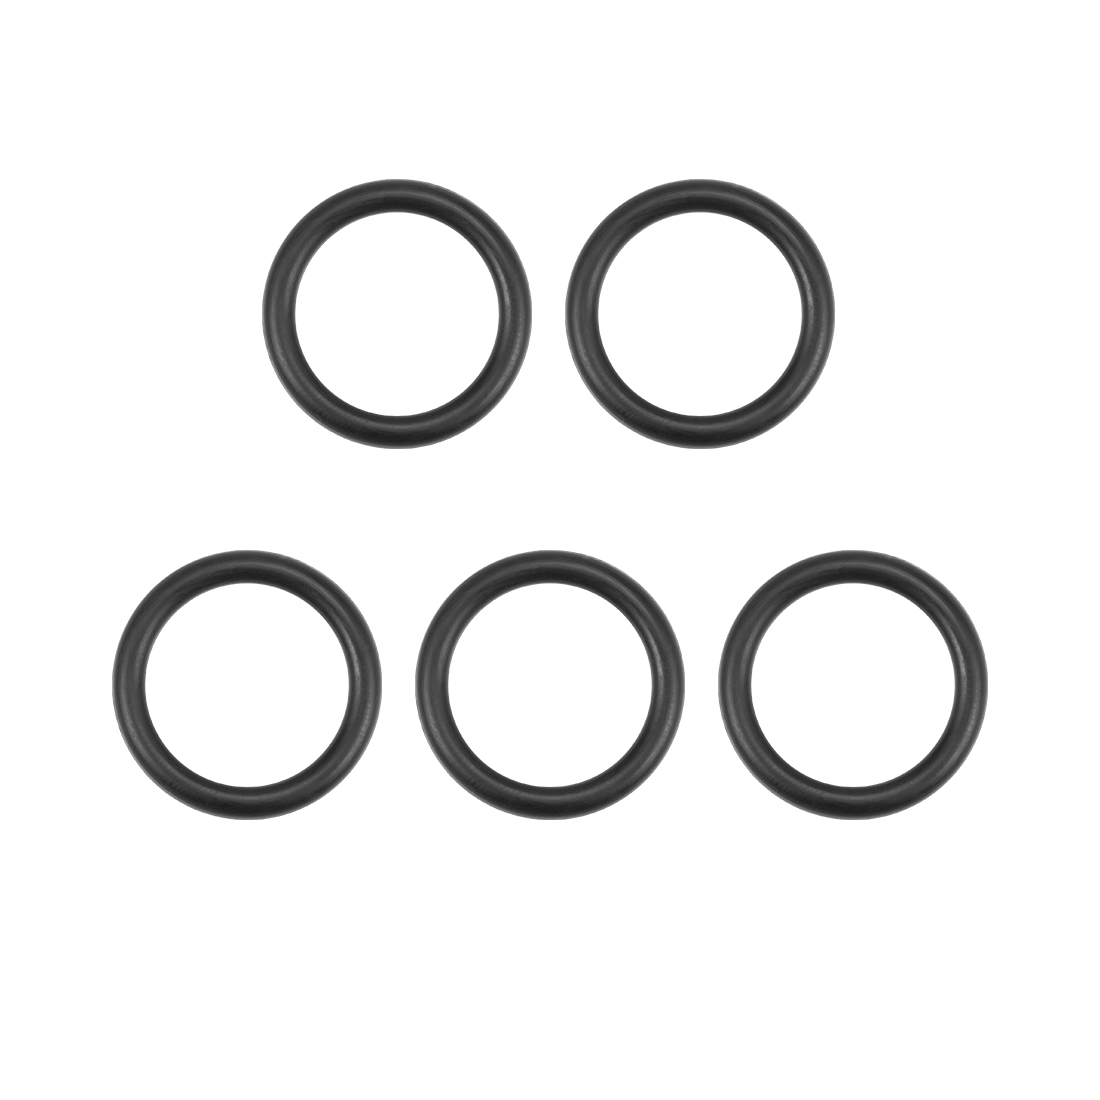 O-Rings Nitrile Rubber 14mm x 19.3mm x 2.65mm Round Seal Gasket 5 Pcs